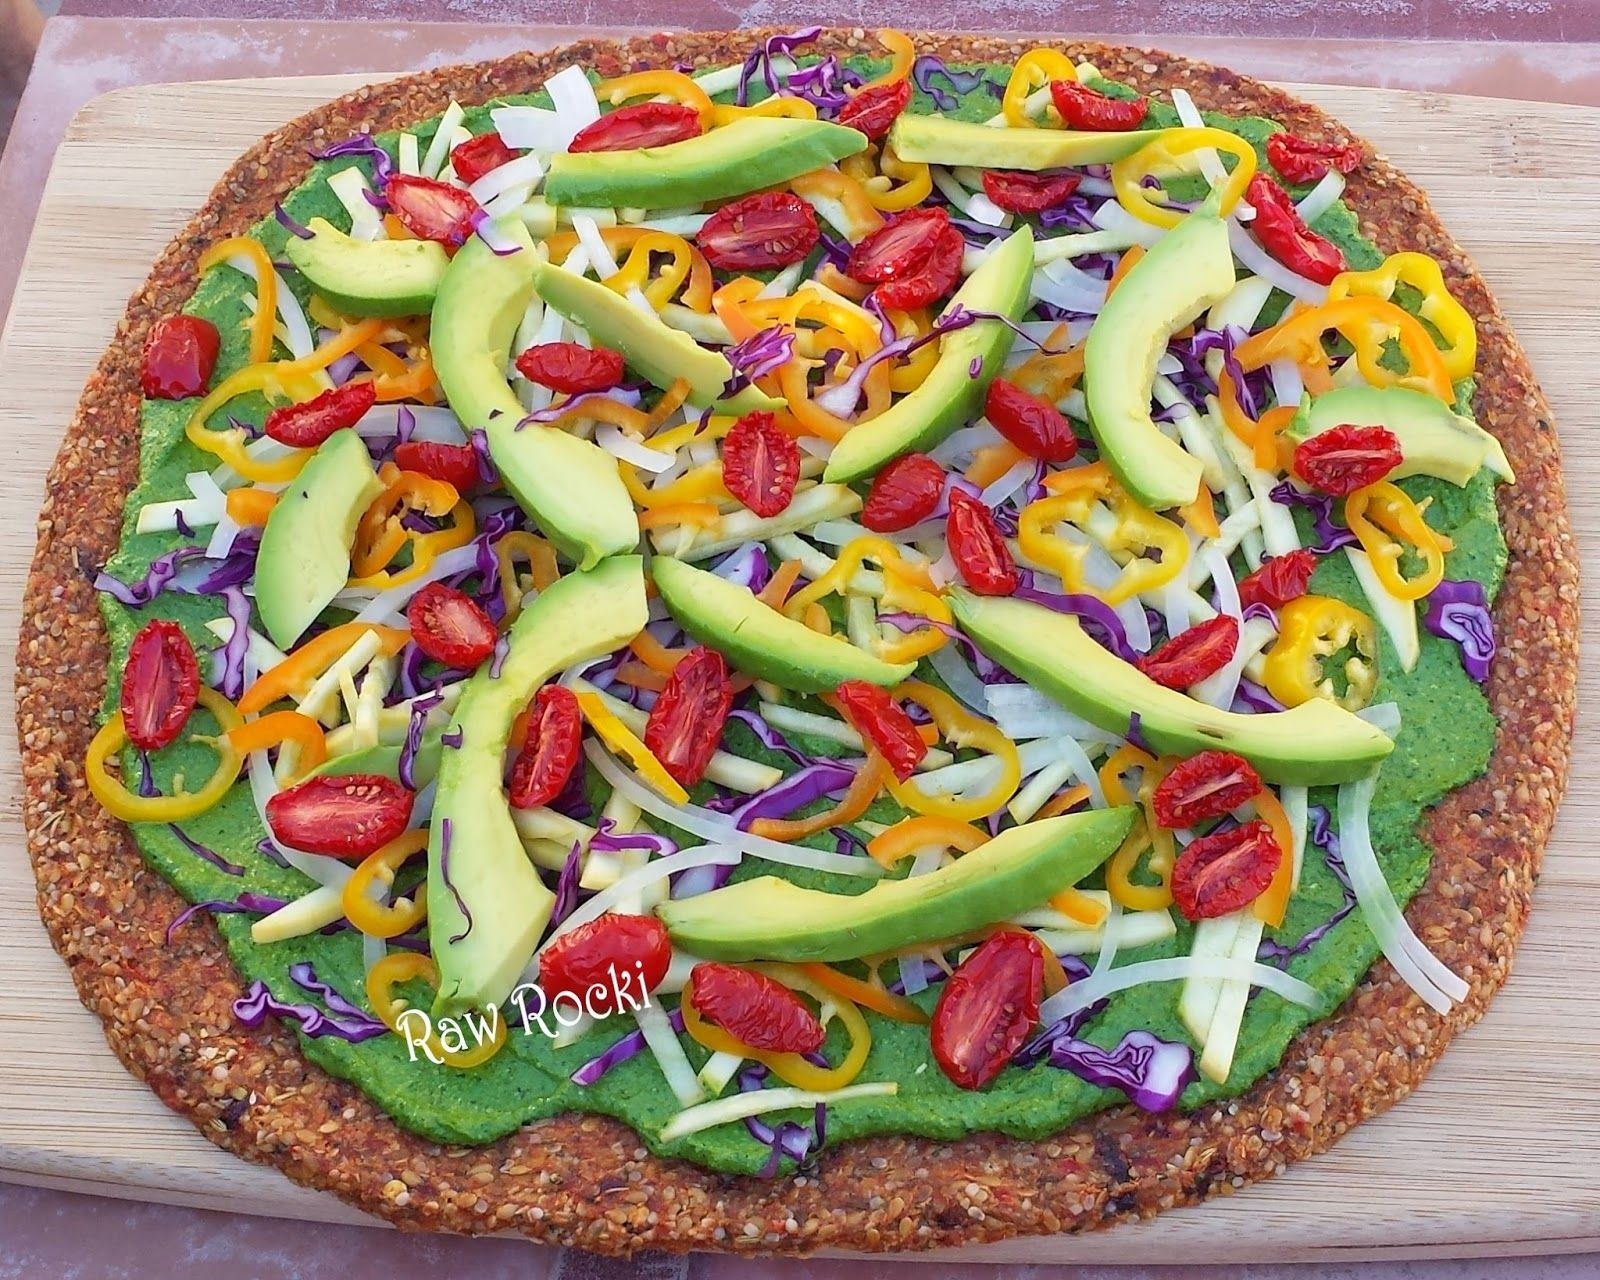 Raw vegan pizza with spinach basil pesto recipe by raw rocki raw raw vegan pizza with spinach basil pesto recipe by raw rocki forumfinder Gallery